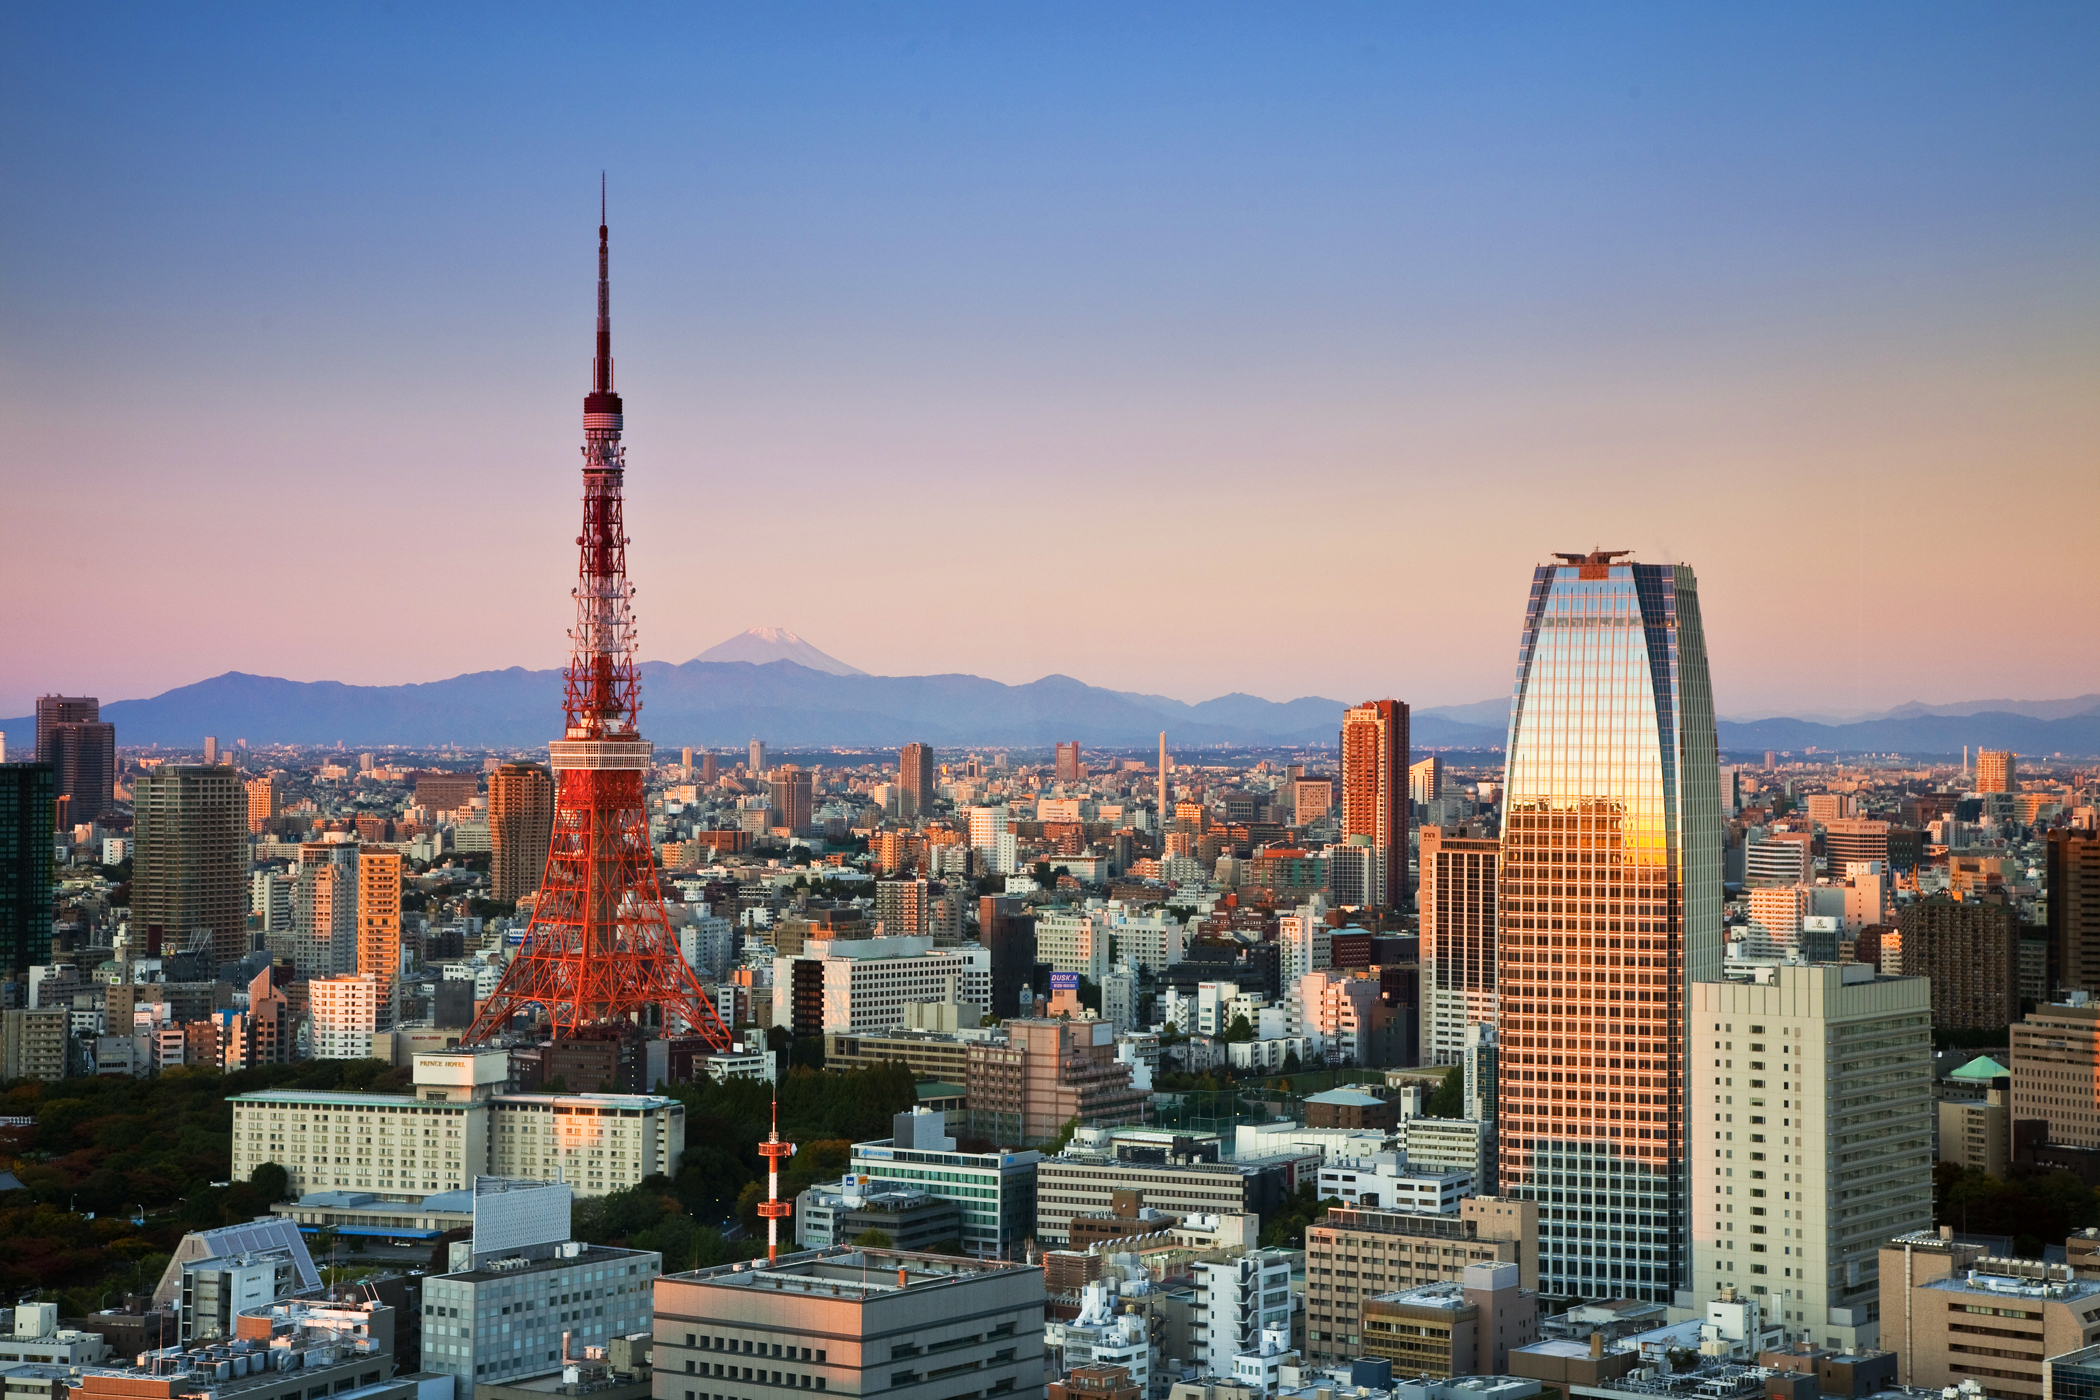 The Tokyo Tower (left) with Mount fuji in the distance